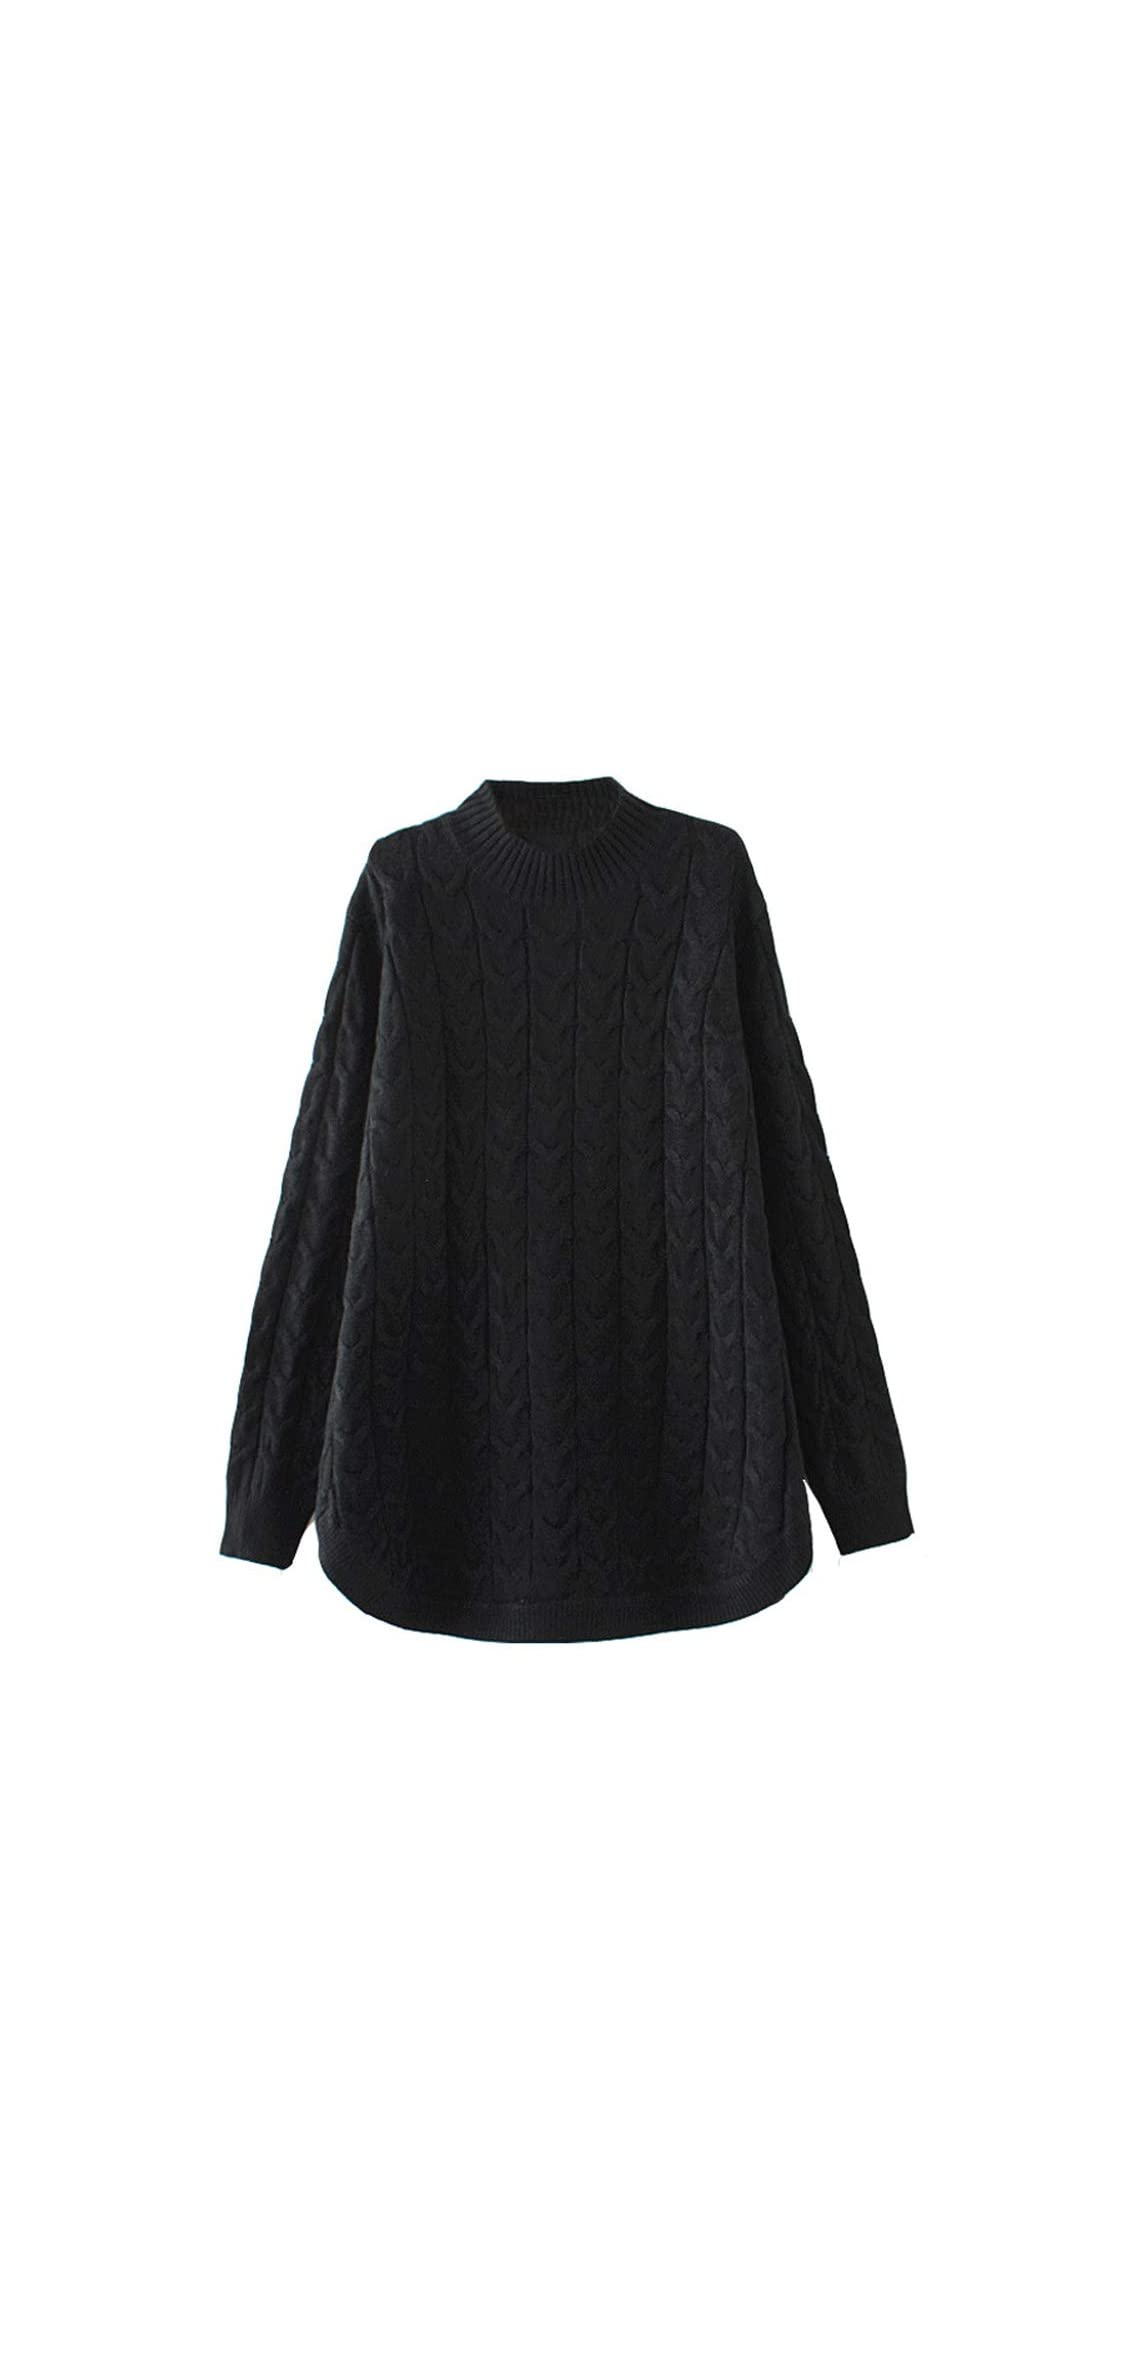 Women's Long Sleeve Sweater Mock Turtleneck Pullover